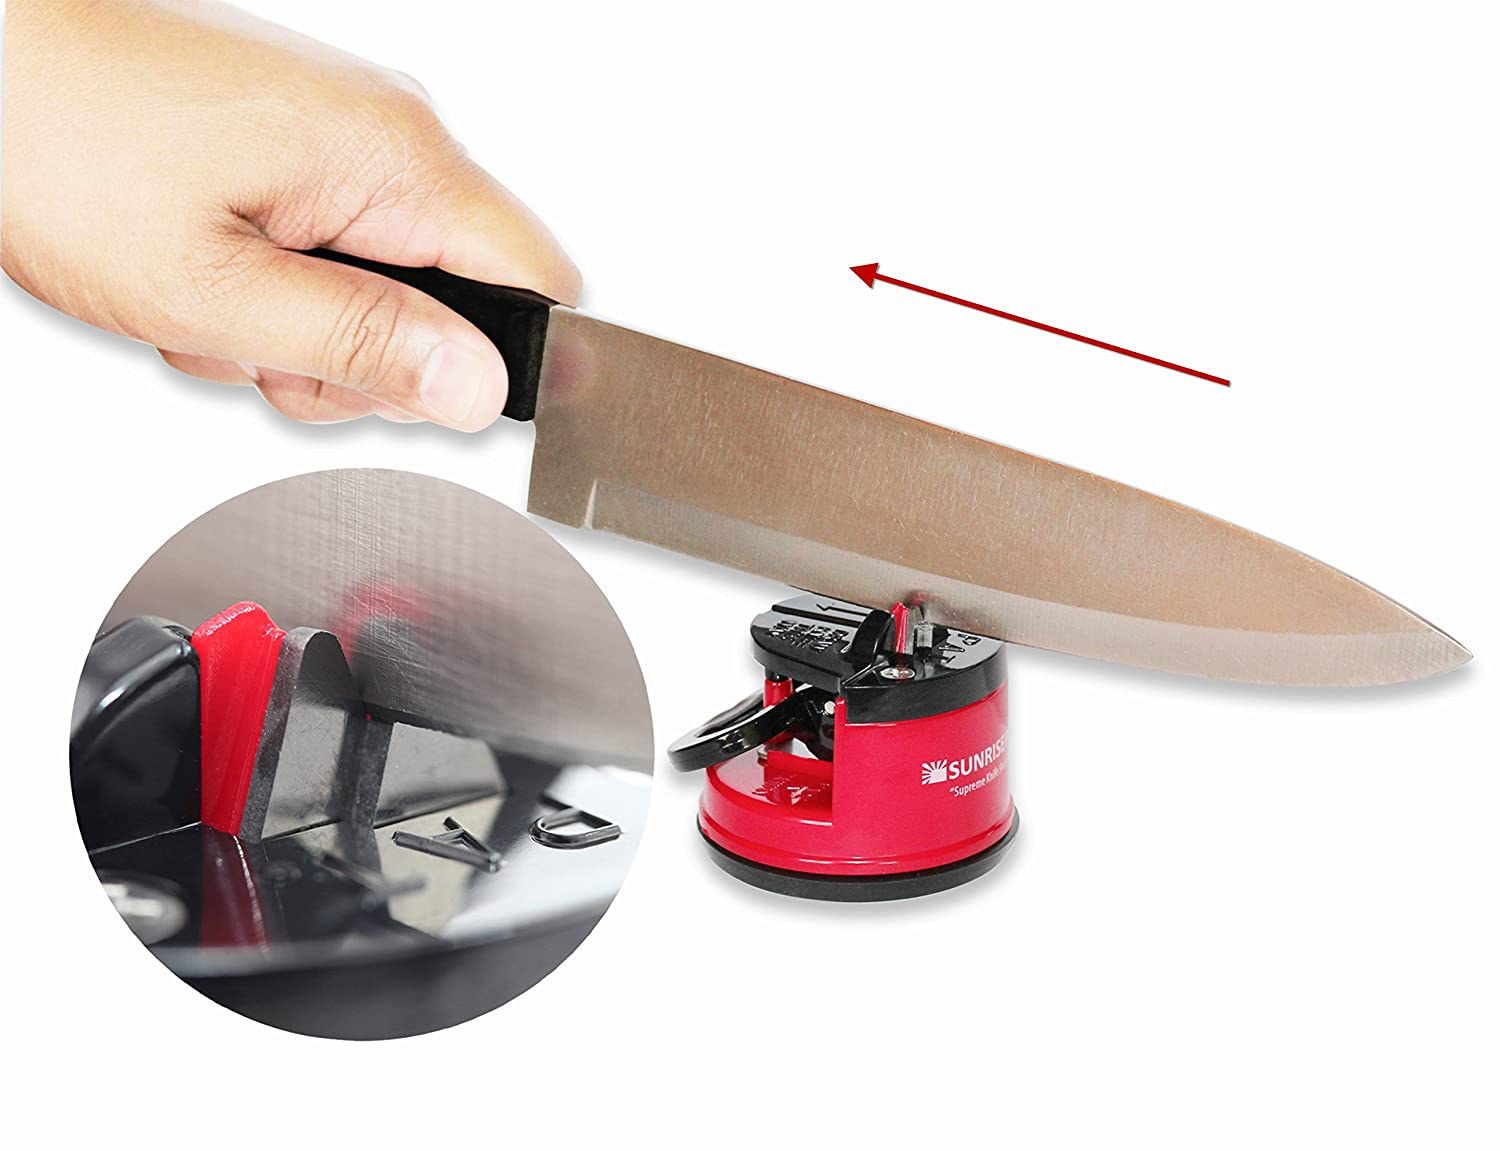 Choosing the Best Pocket Knife Sharpener